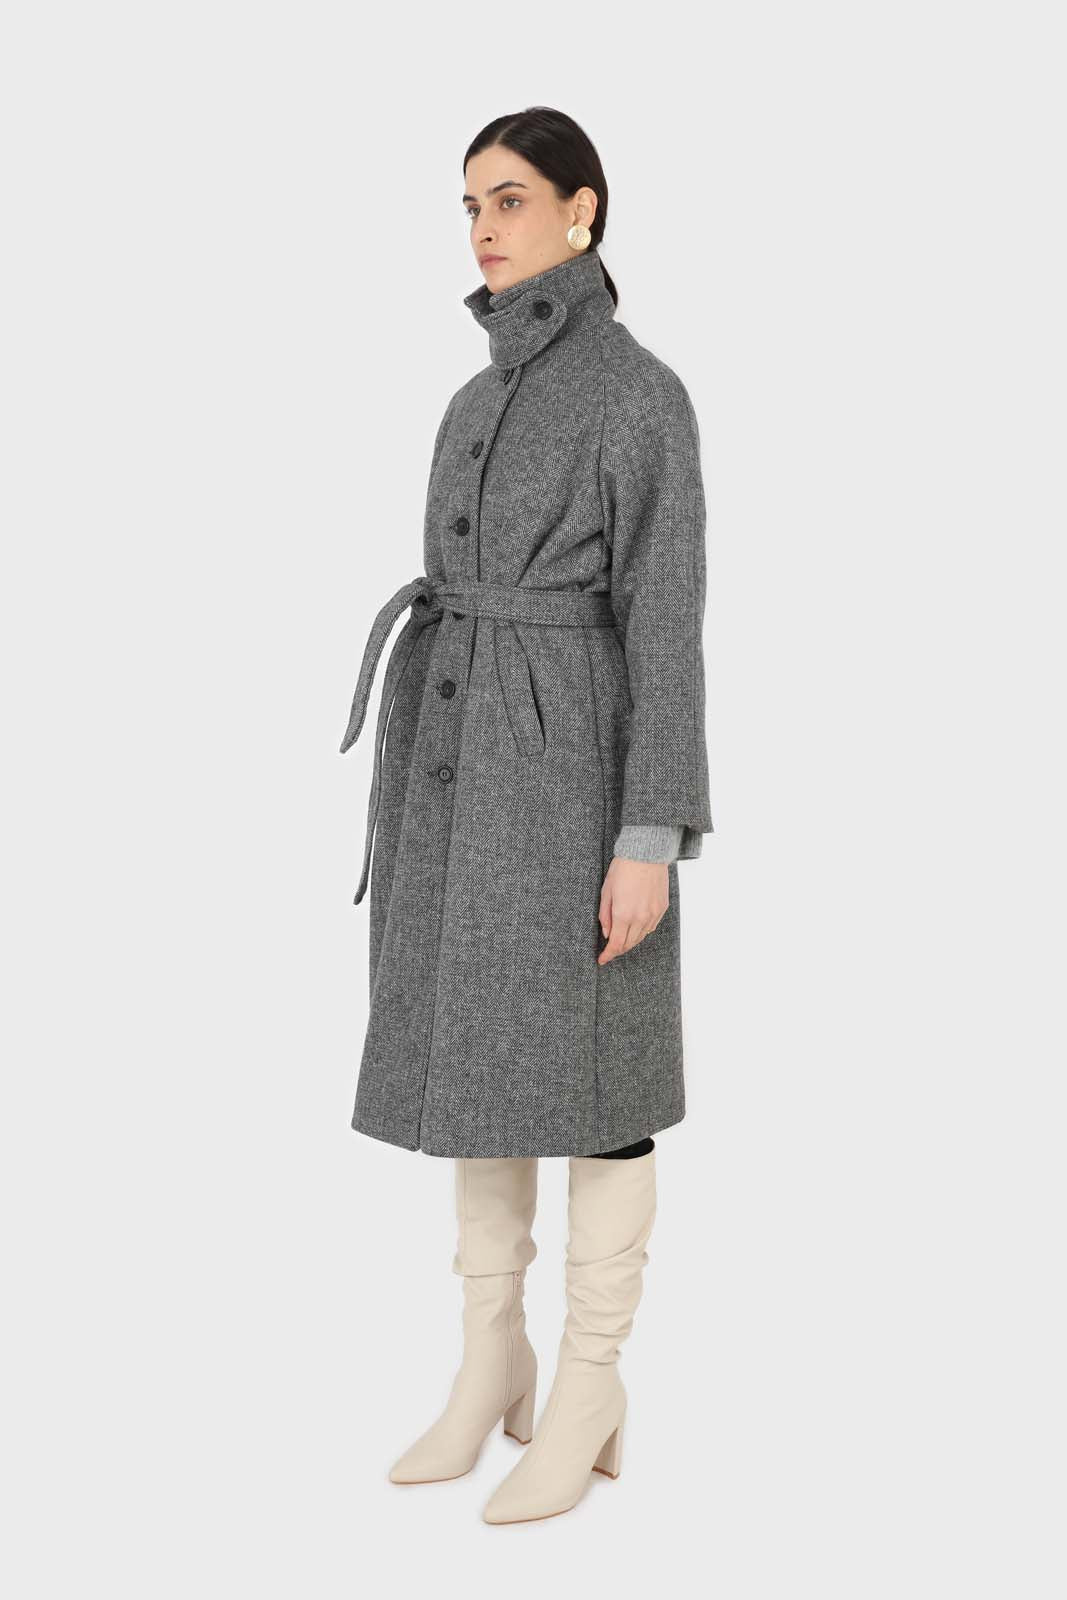 Black herringbone wool long coat10